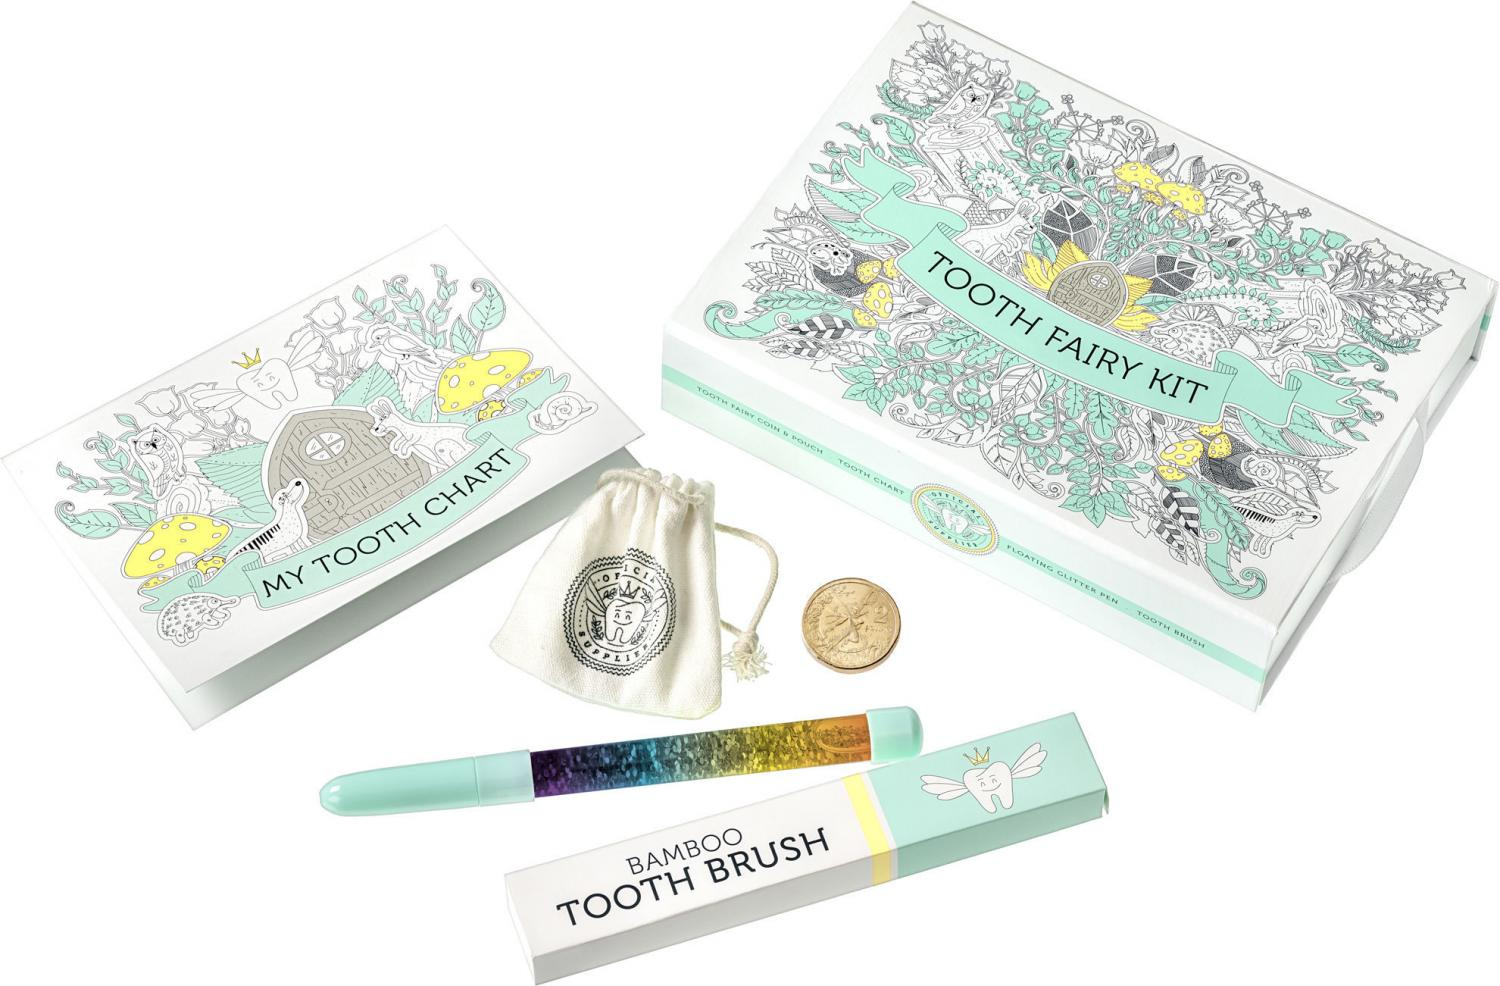 Thumbnail for 2021 Tooth Fairy Kit with Tooth Fairy $2 coin in bag